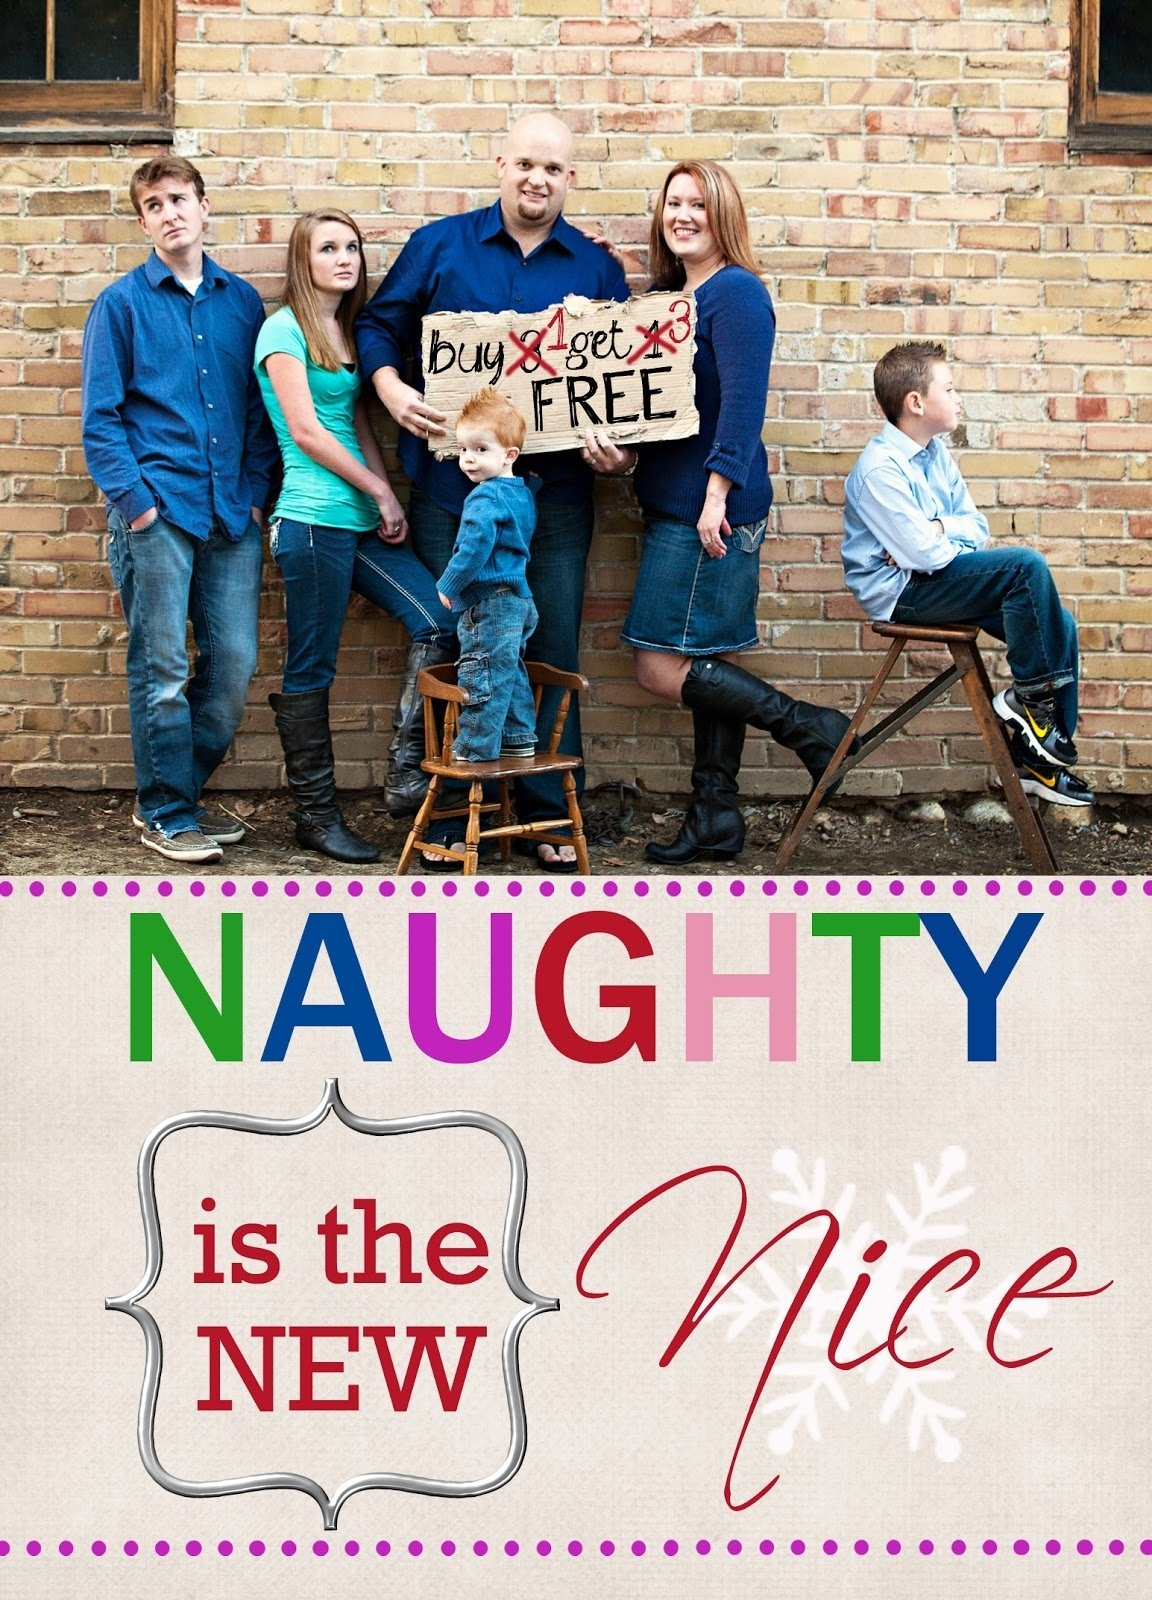 10 Great Funny Family Christmas Card Ideas funny family christmas card idea crafty holidays pinterest 2020